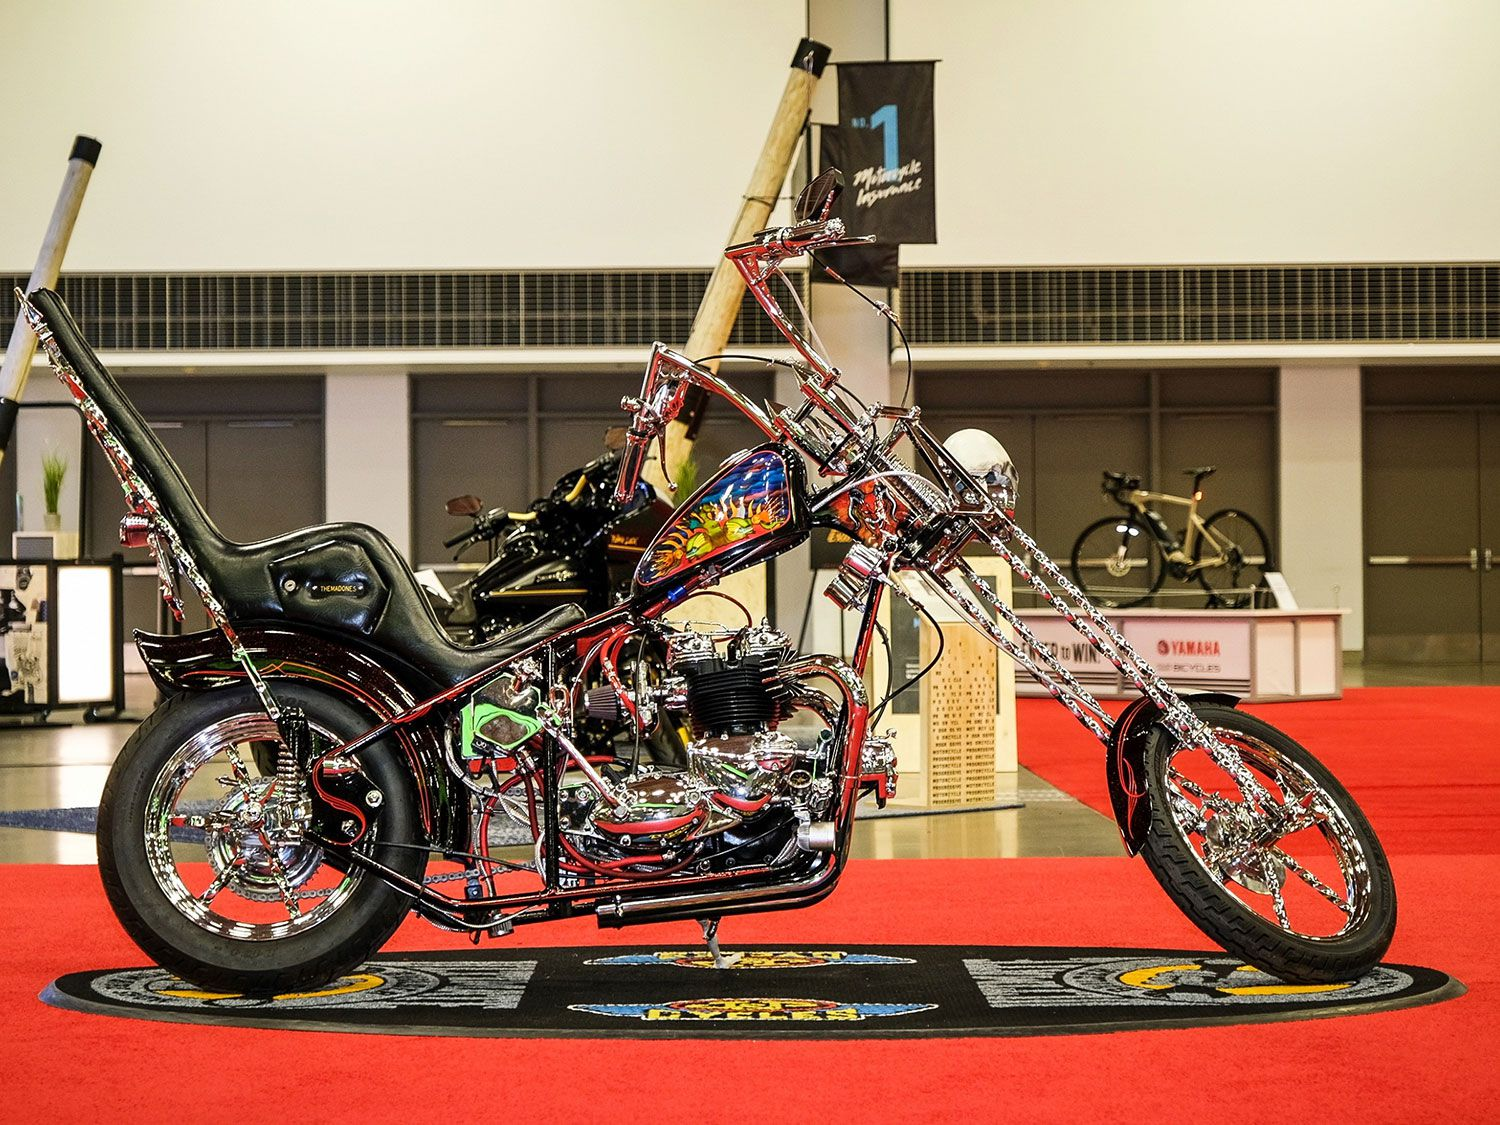 "Joseph ""Lefty"" Hyde's 1973 Triumph Tiger, painted by Tim Becker and Monti Roach, took home first place in the Custom Classic category. Check out the skull headlight and '60s-style sissy bar."